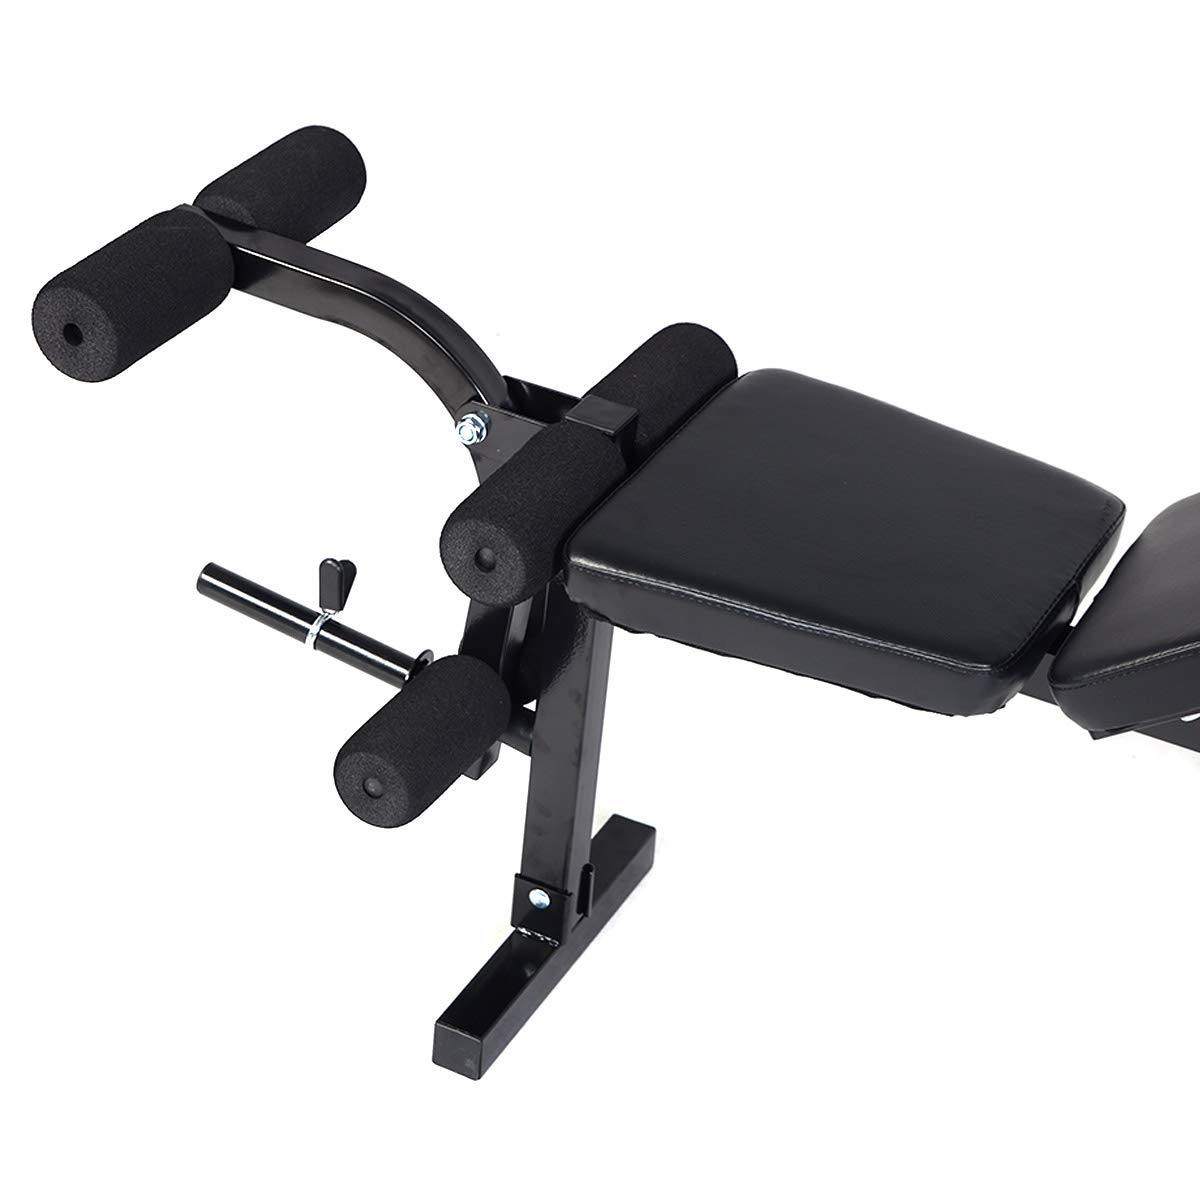 GYMAX Adjustable Bench, Multi-Function Weight Lifting Bench for Full Body Workout Fitness